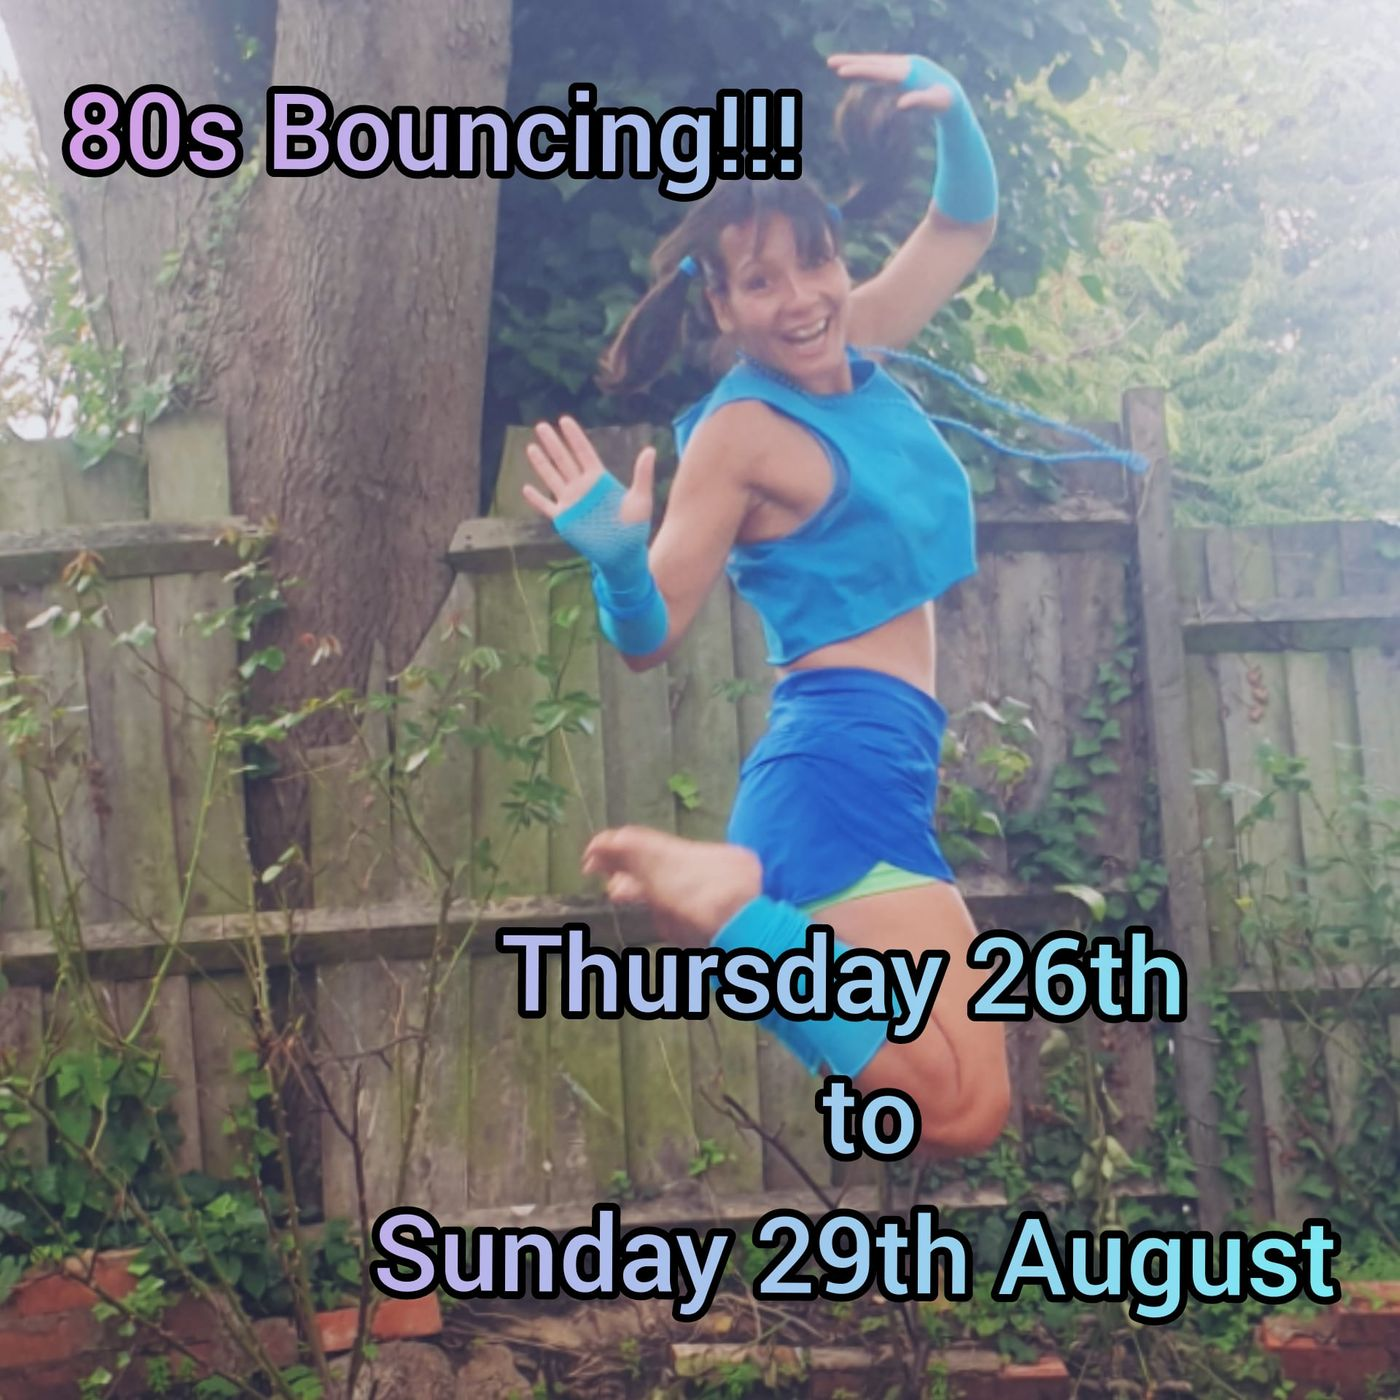 Exciting announcement... on Thursday 26th August to Sunday 29th August all Bouncing classes will be going back to the 80s! 🎉🤸♀️🎵 Message me your special requests by the end of next week!! 😉 Be there or be square!